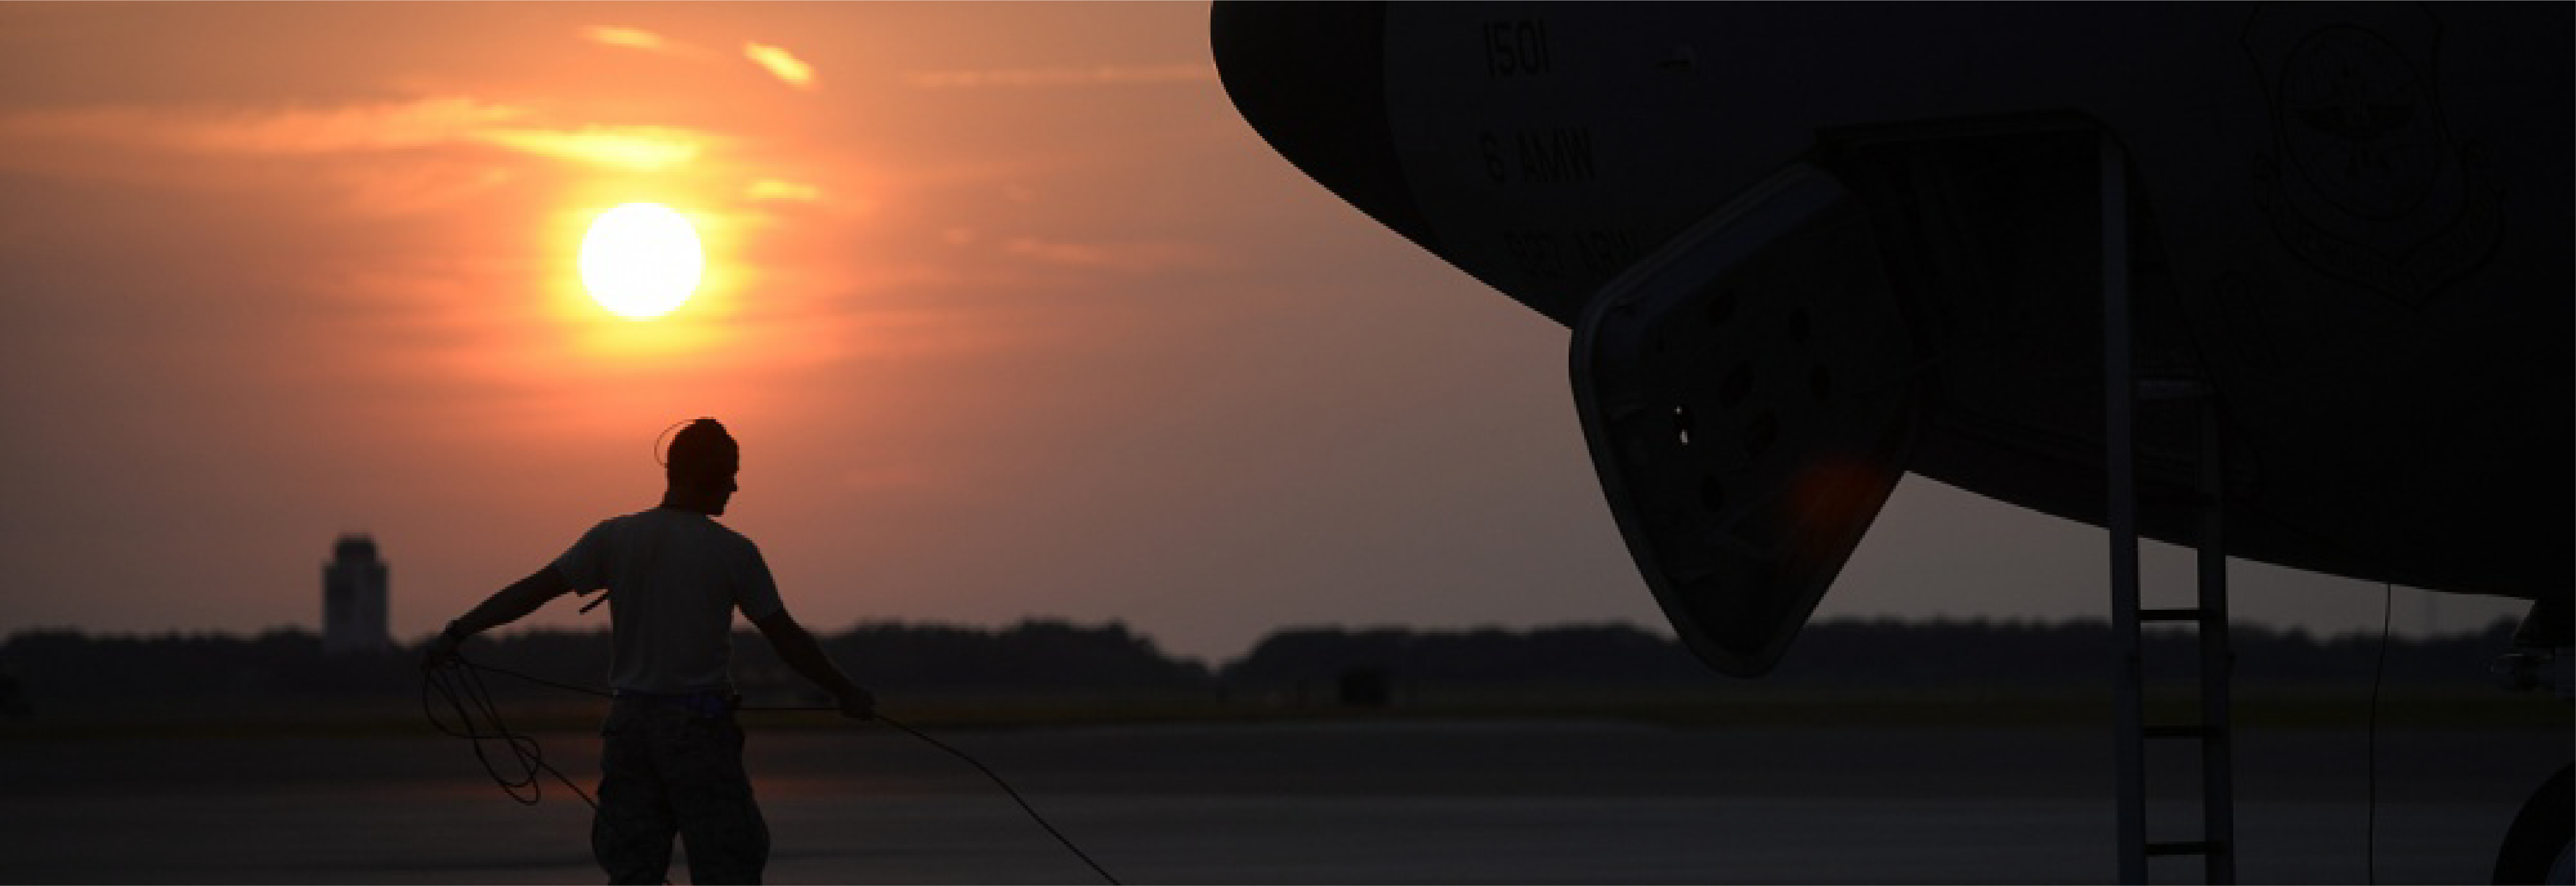 MacDill AFB Weather: What To Expect When Moving Here